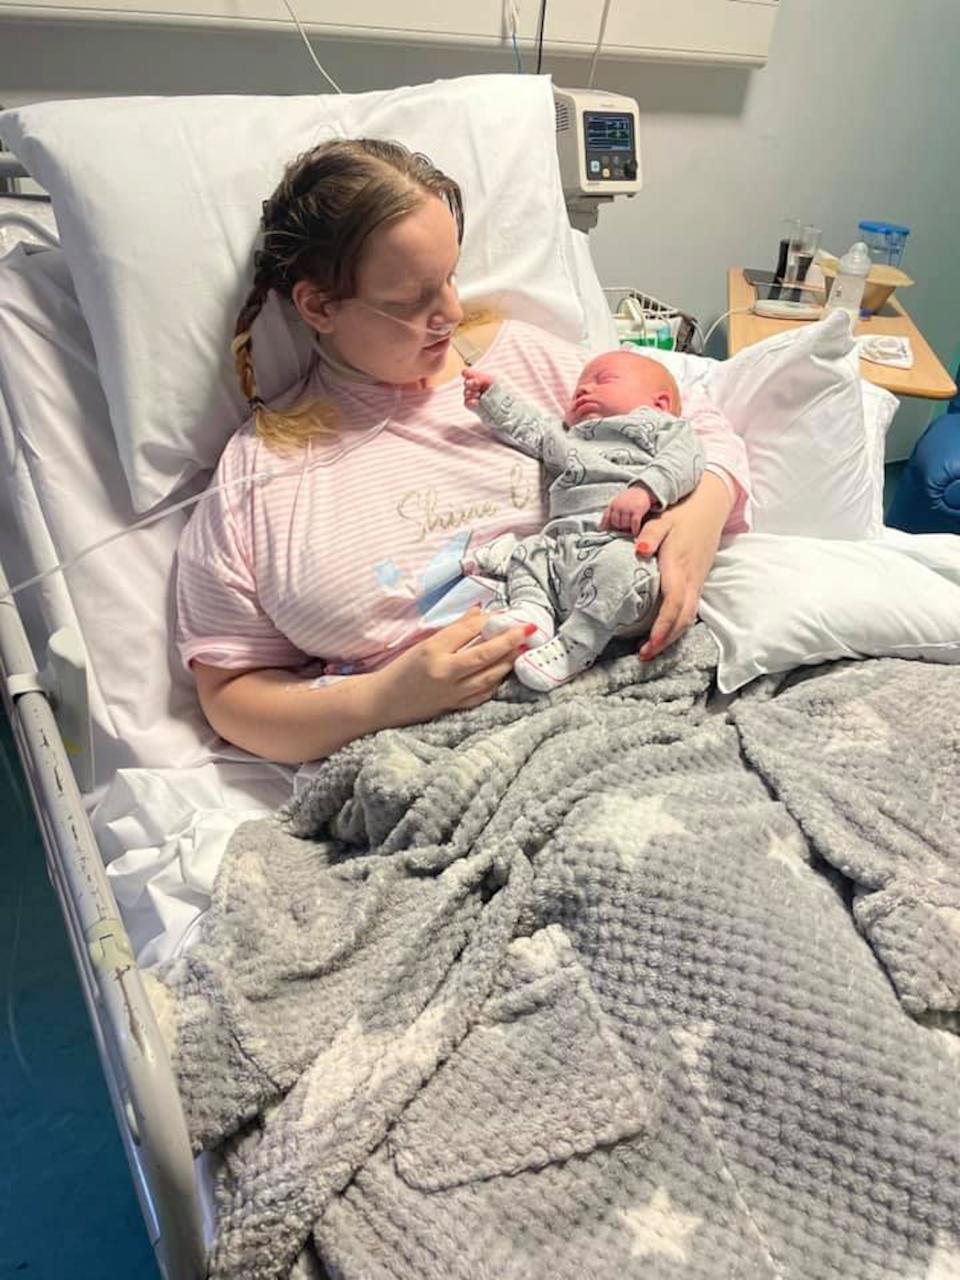 Wright holds her son, Leo, in hospital. (Caters)